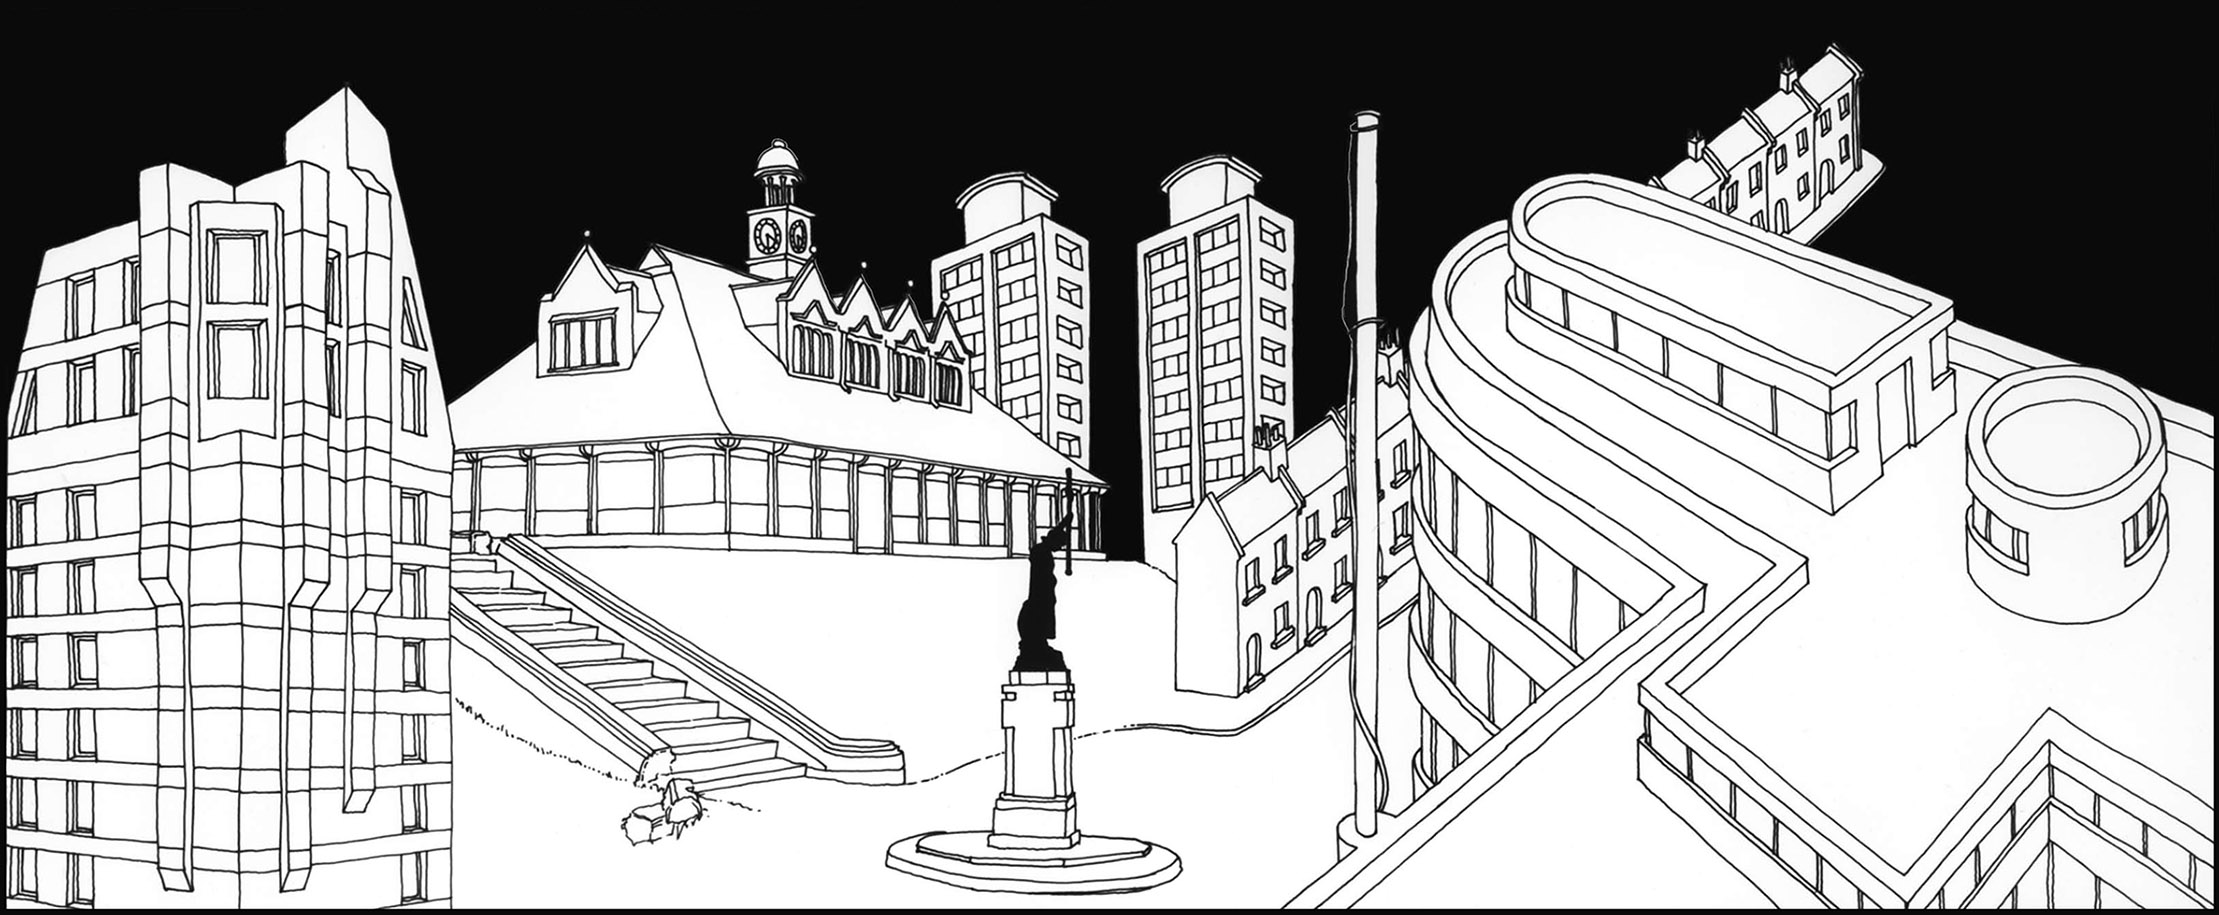 Drawing from Cities of the Dead: Try Another World Battersea Arts Centre, London 1984